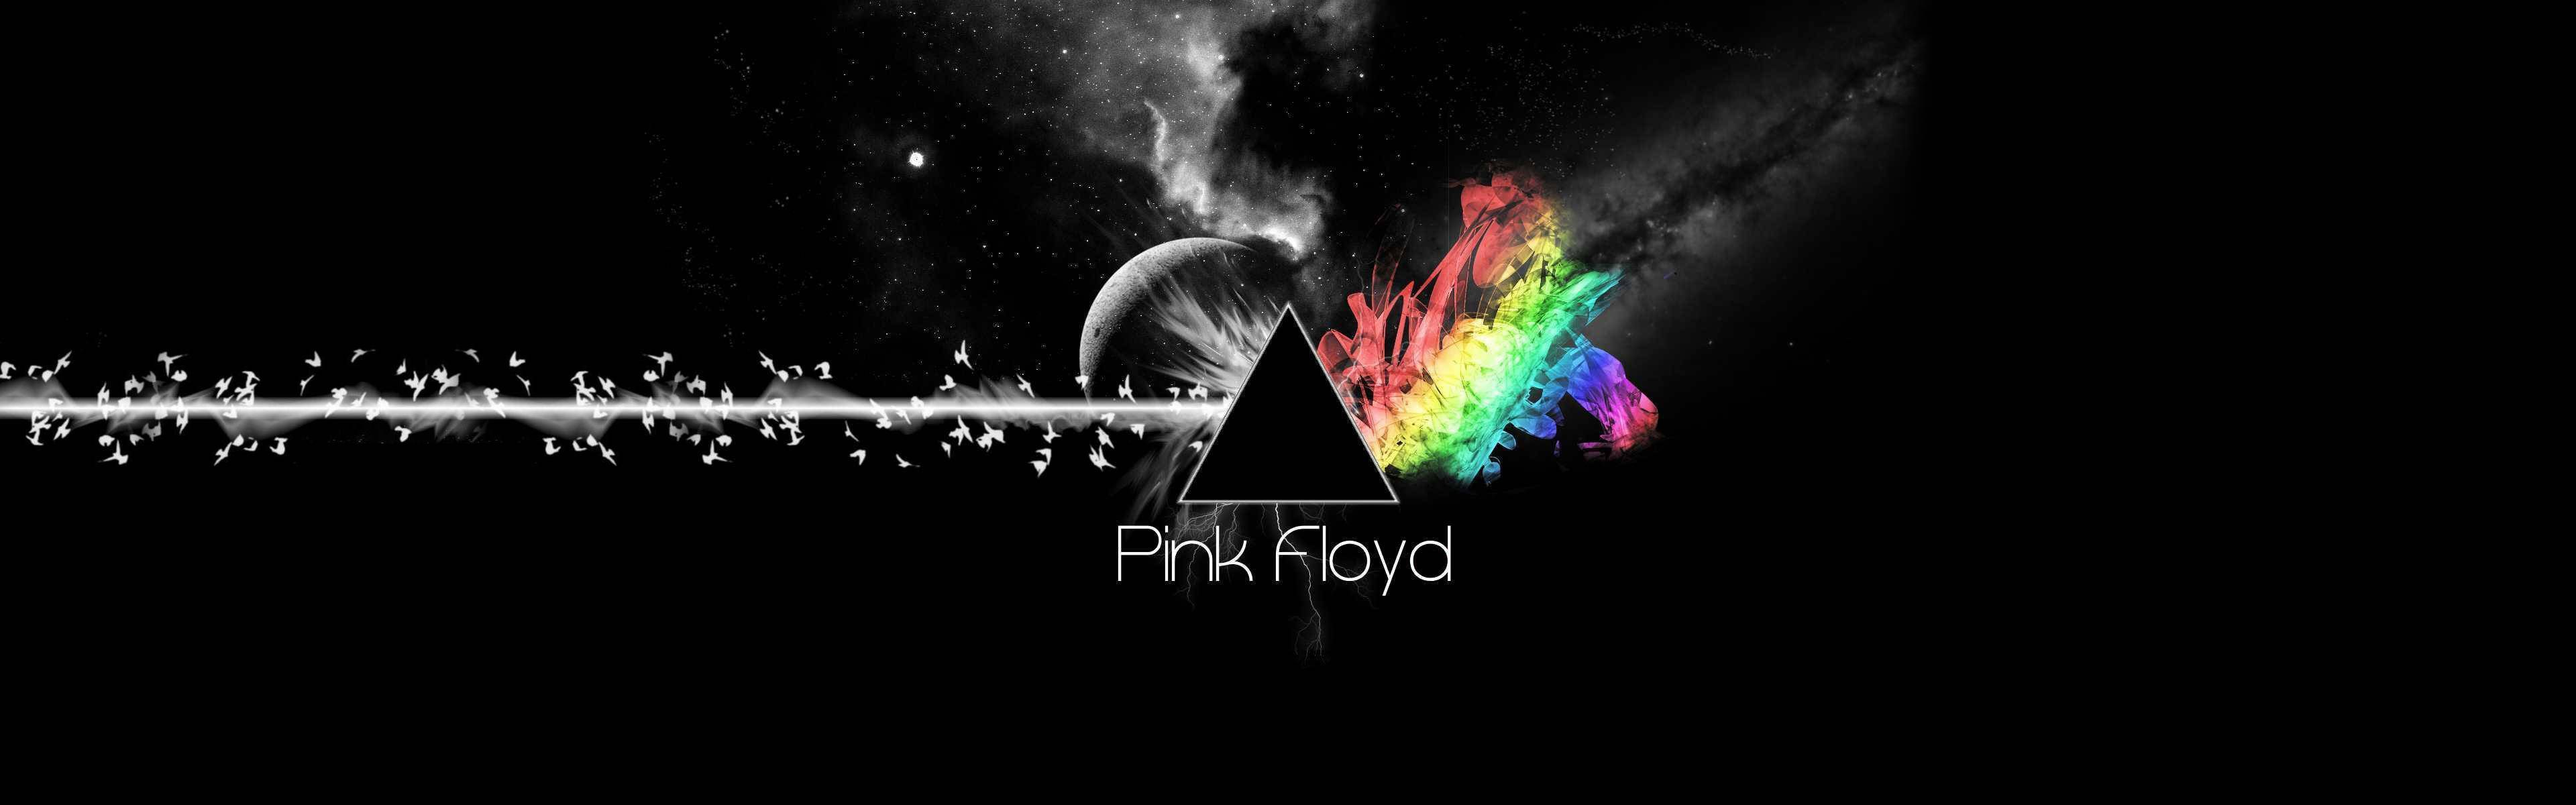 pink-floyd-1080p-high-quality-wallpaper-wp3801074